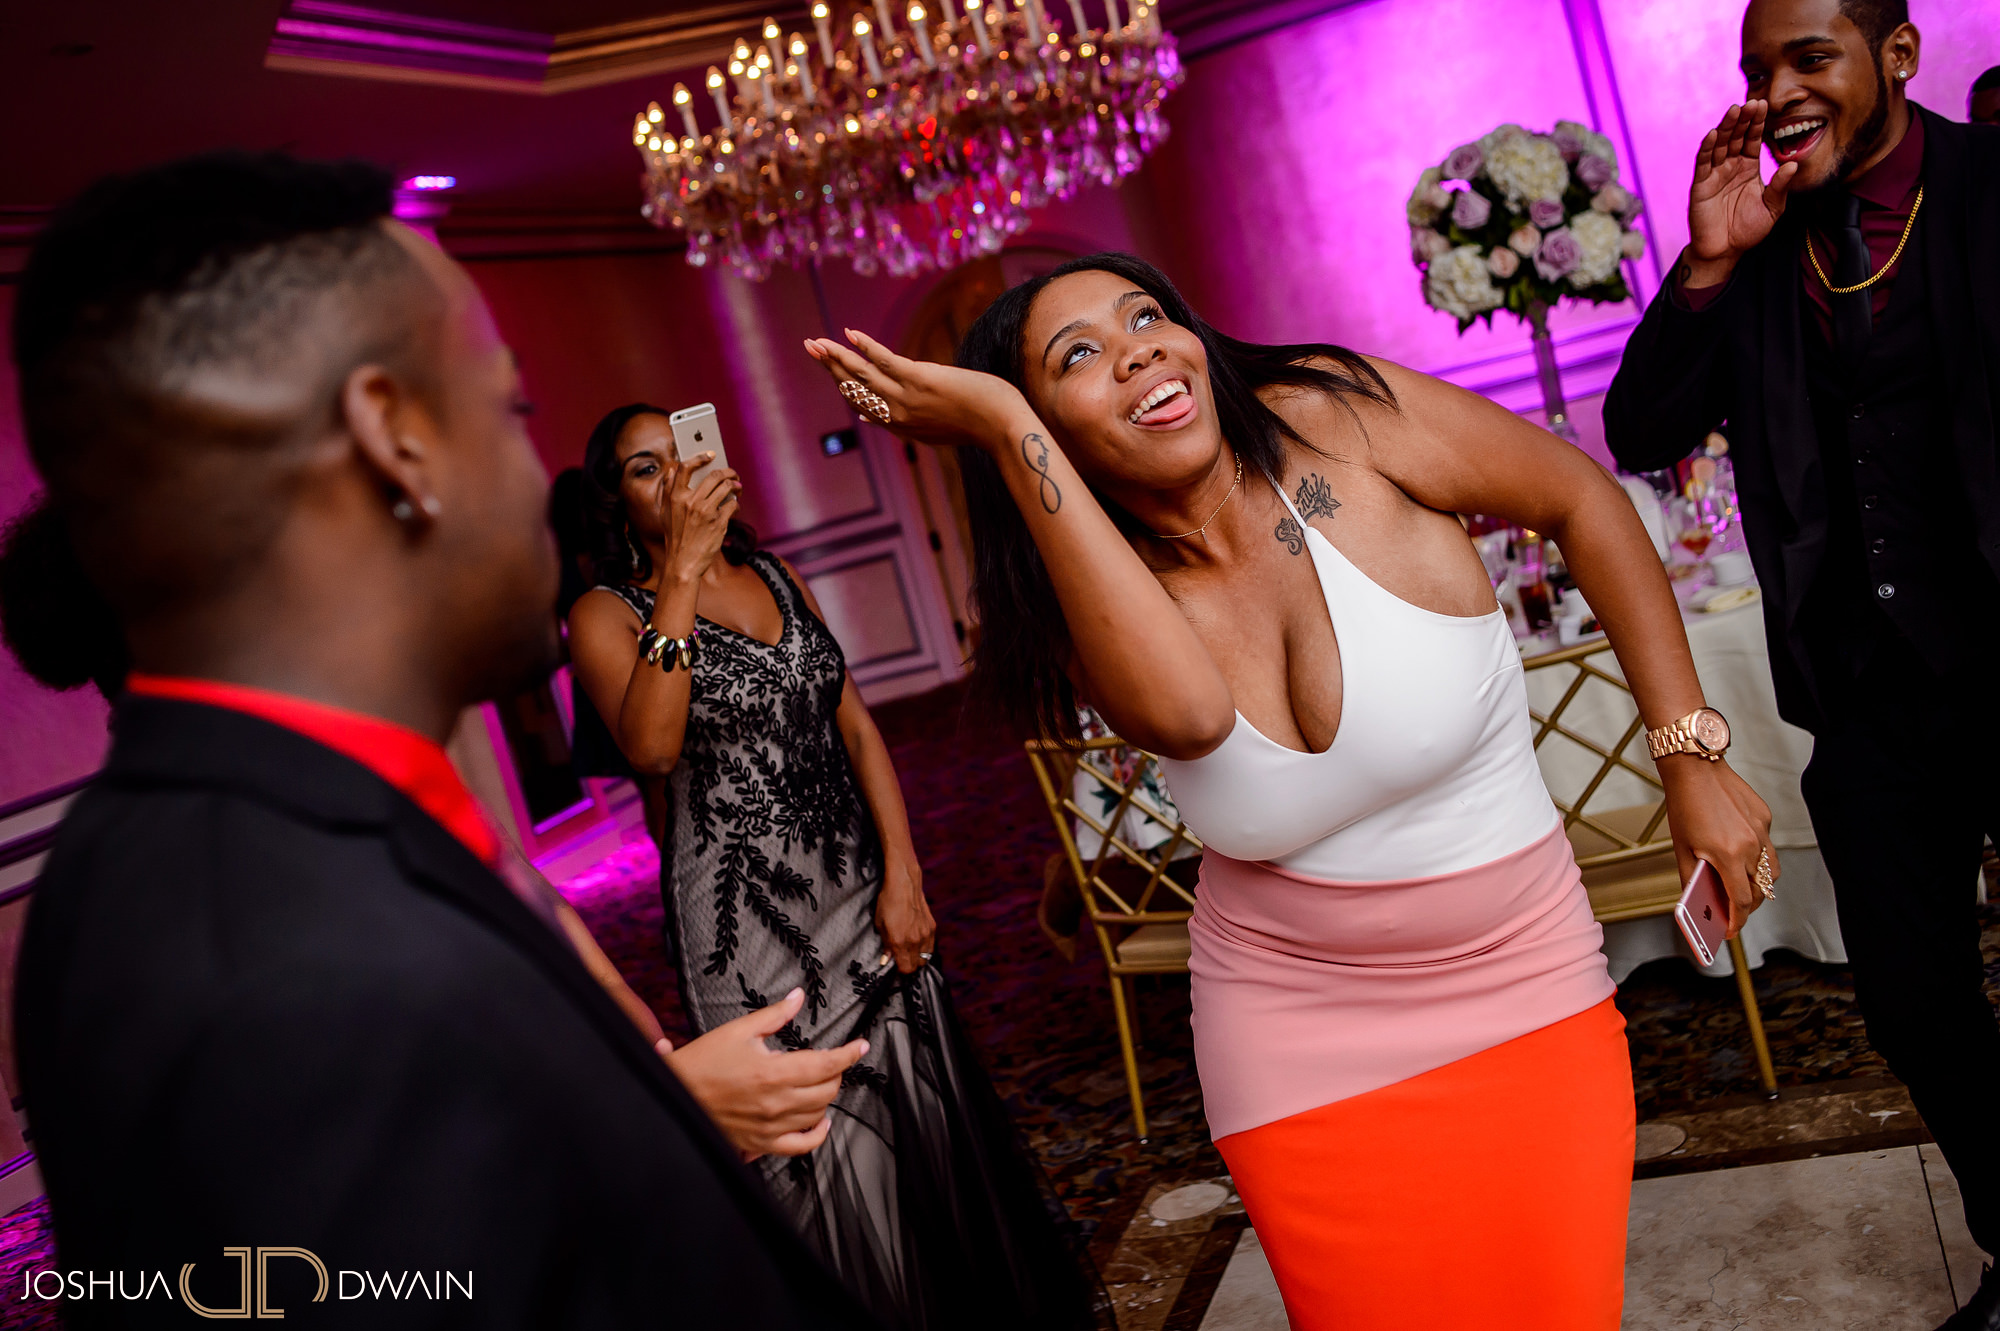 sandra-otwan-046-surf-club-new-rochelle-wedding-joshua-dwain-photos